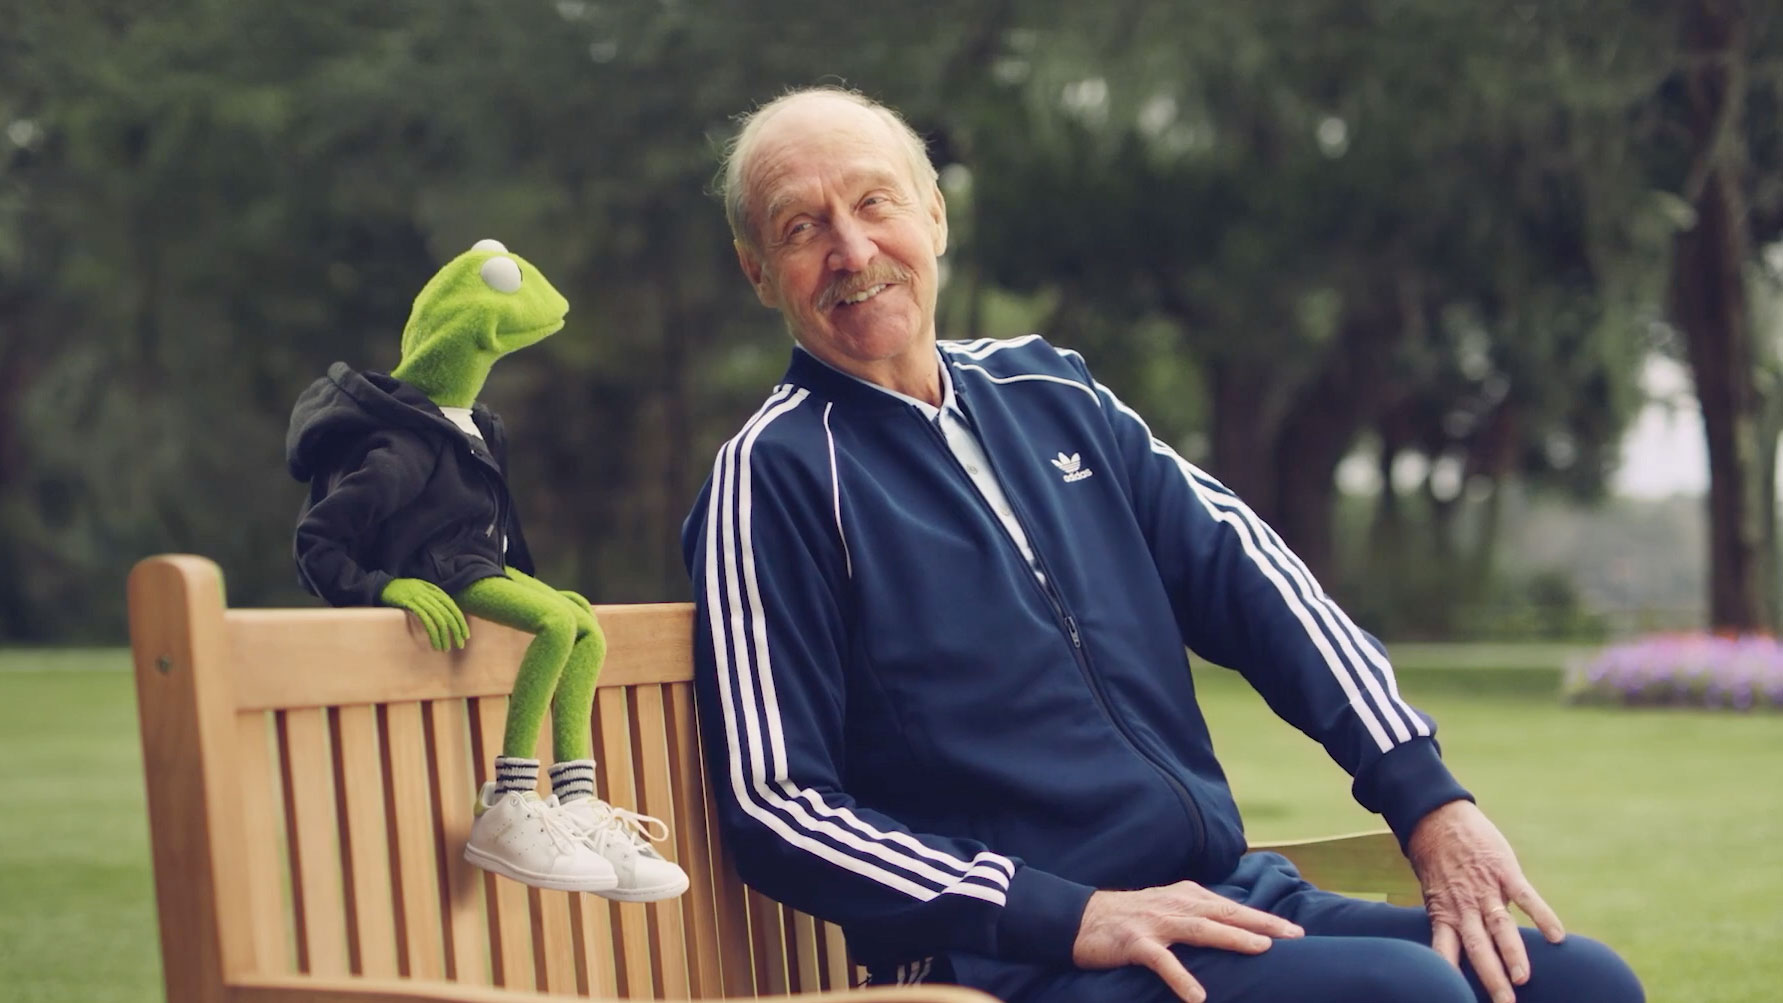 THE MUPPETS X STAN SMITH 'KERMIT THE FROG'